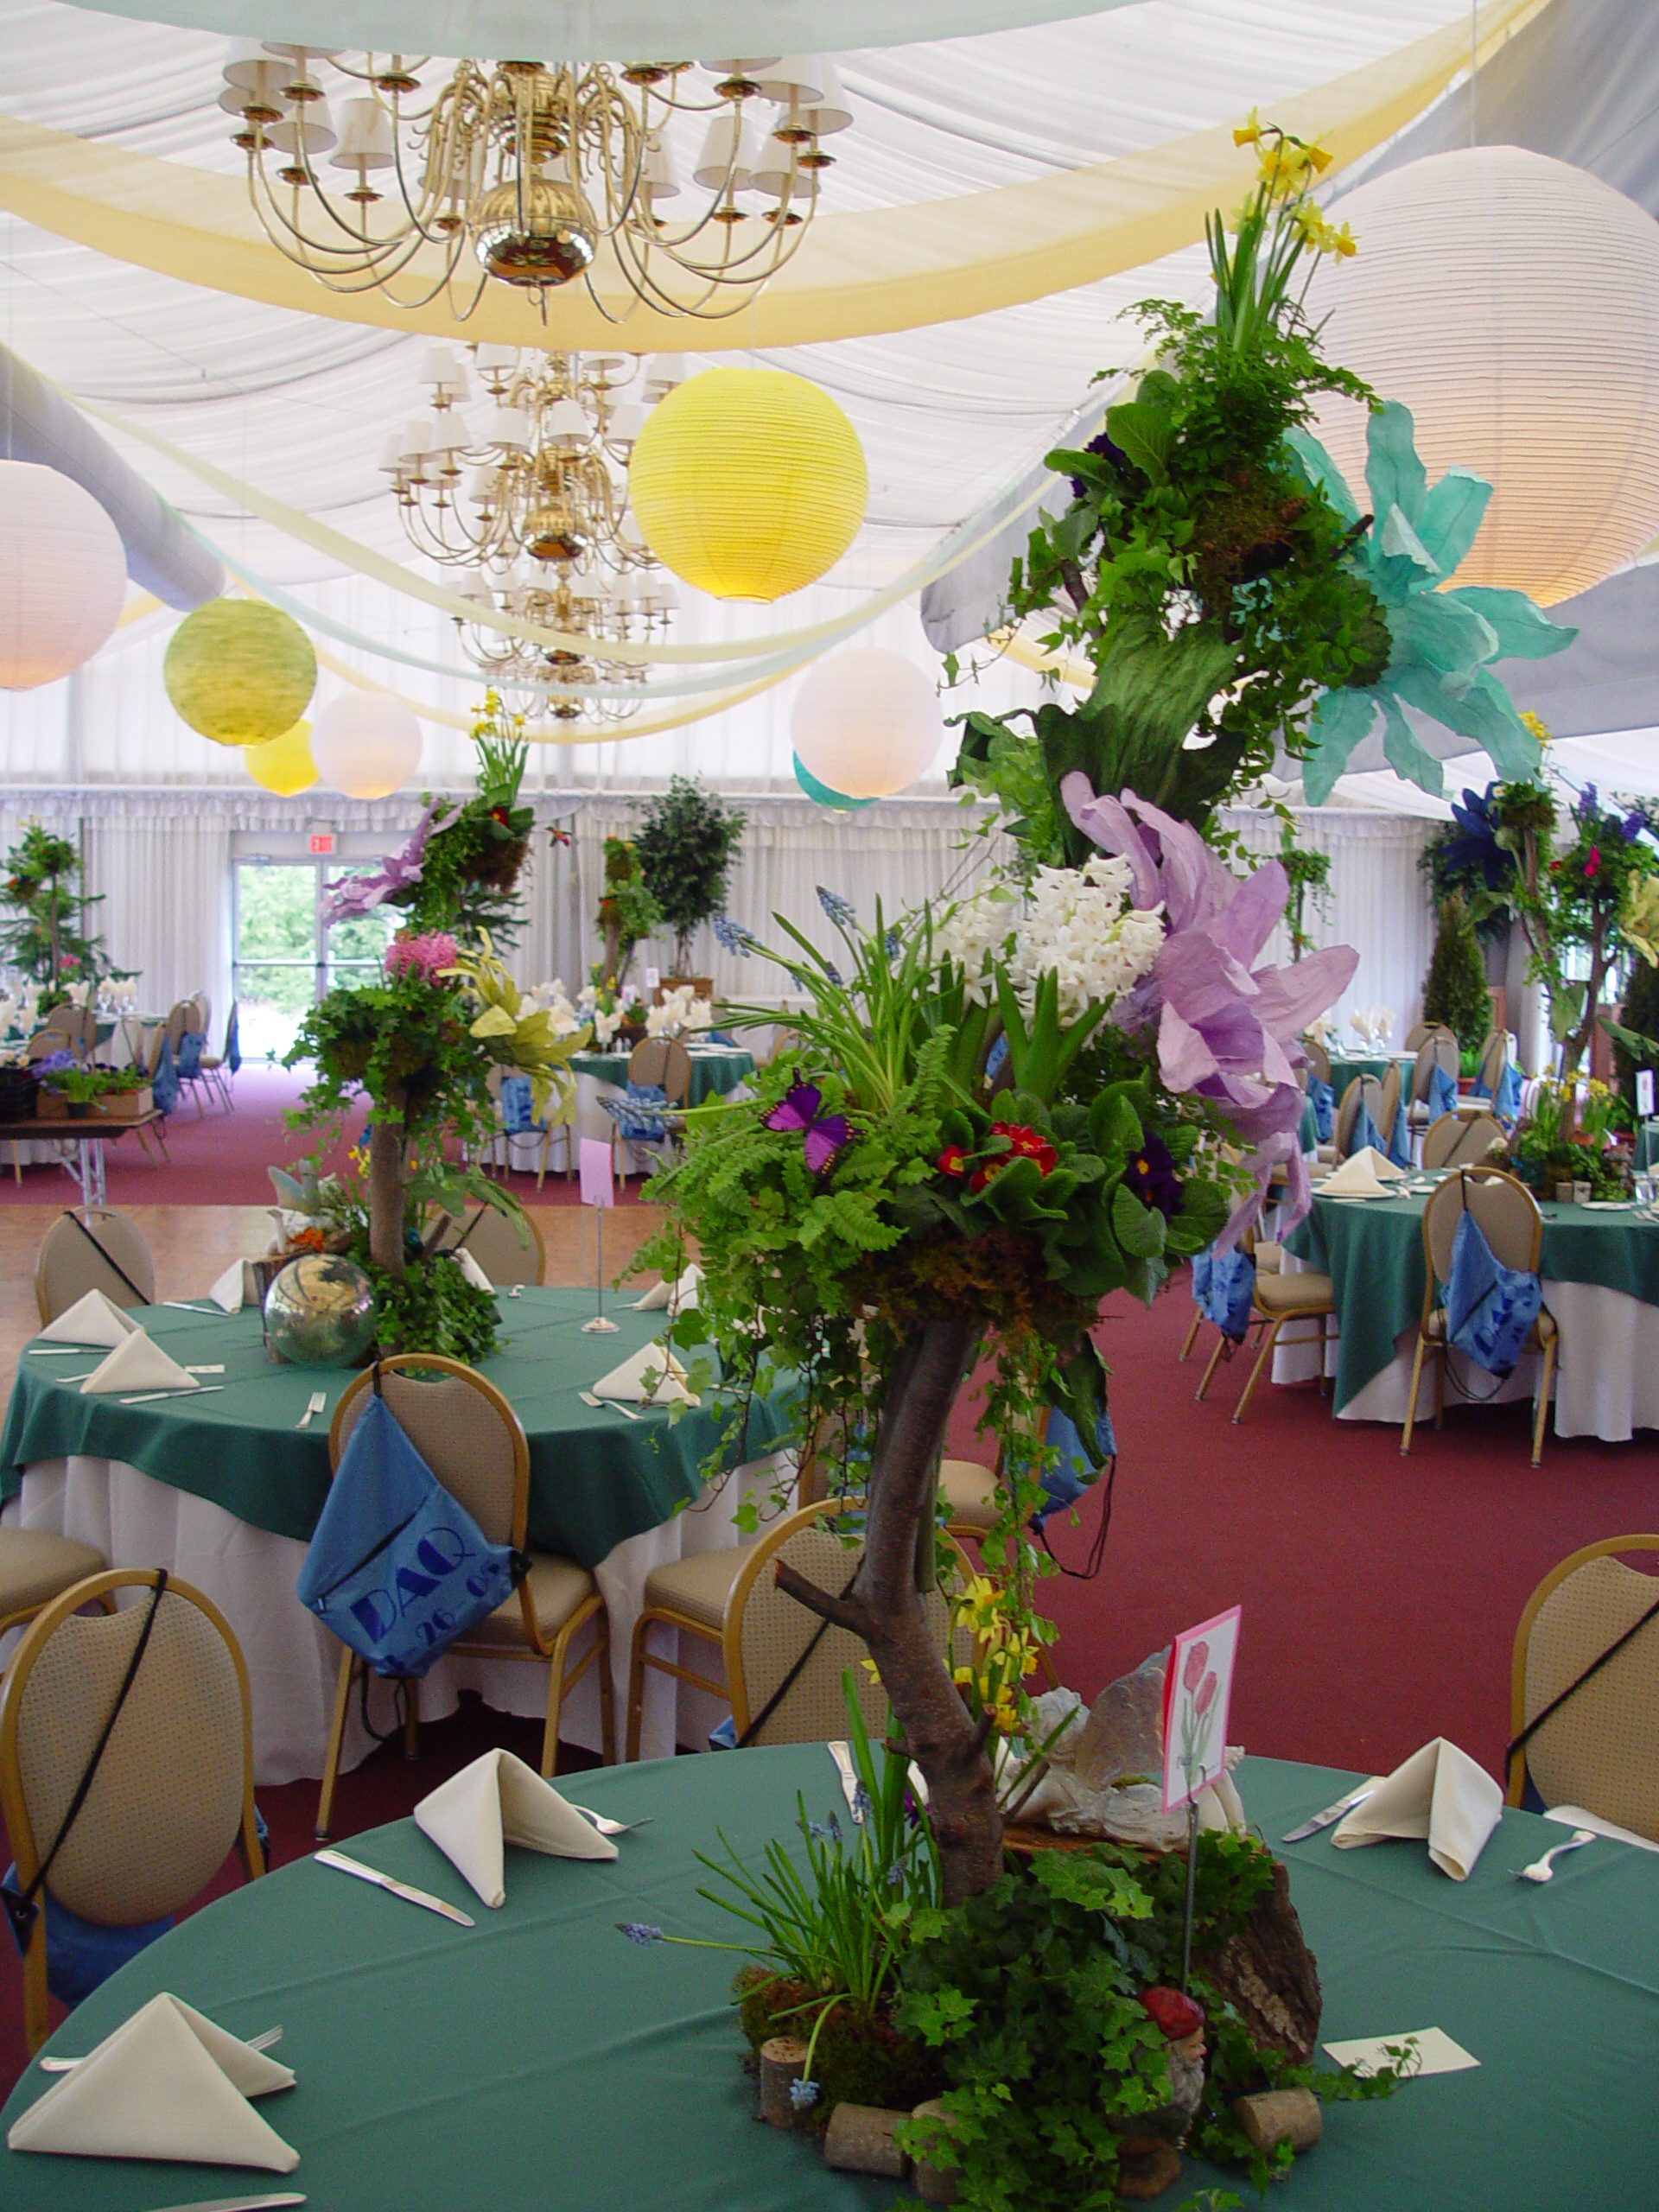 Bat+Mitzvah+design+decor+centerpieces+eggsotic+events.jpg